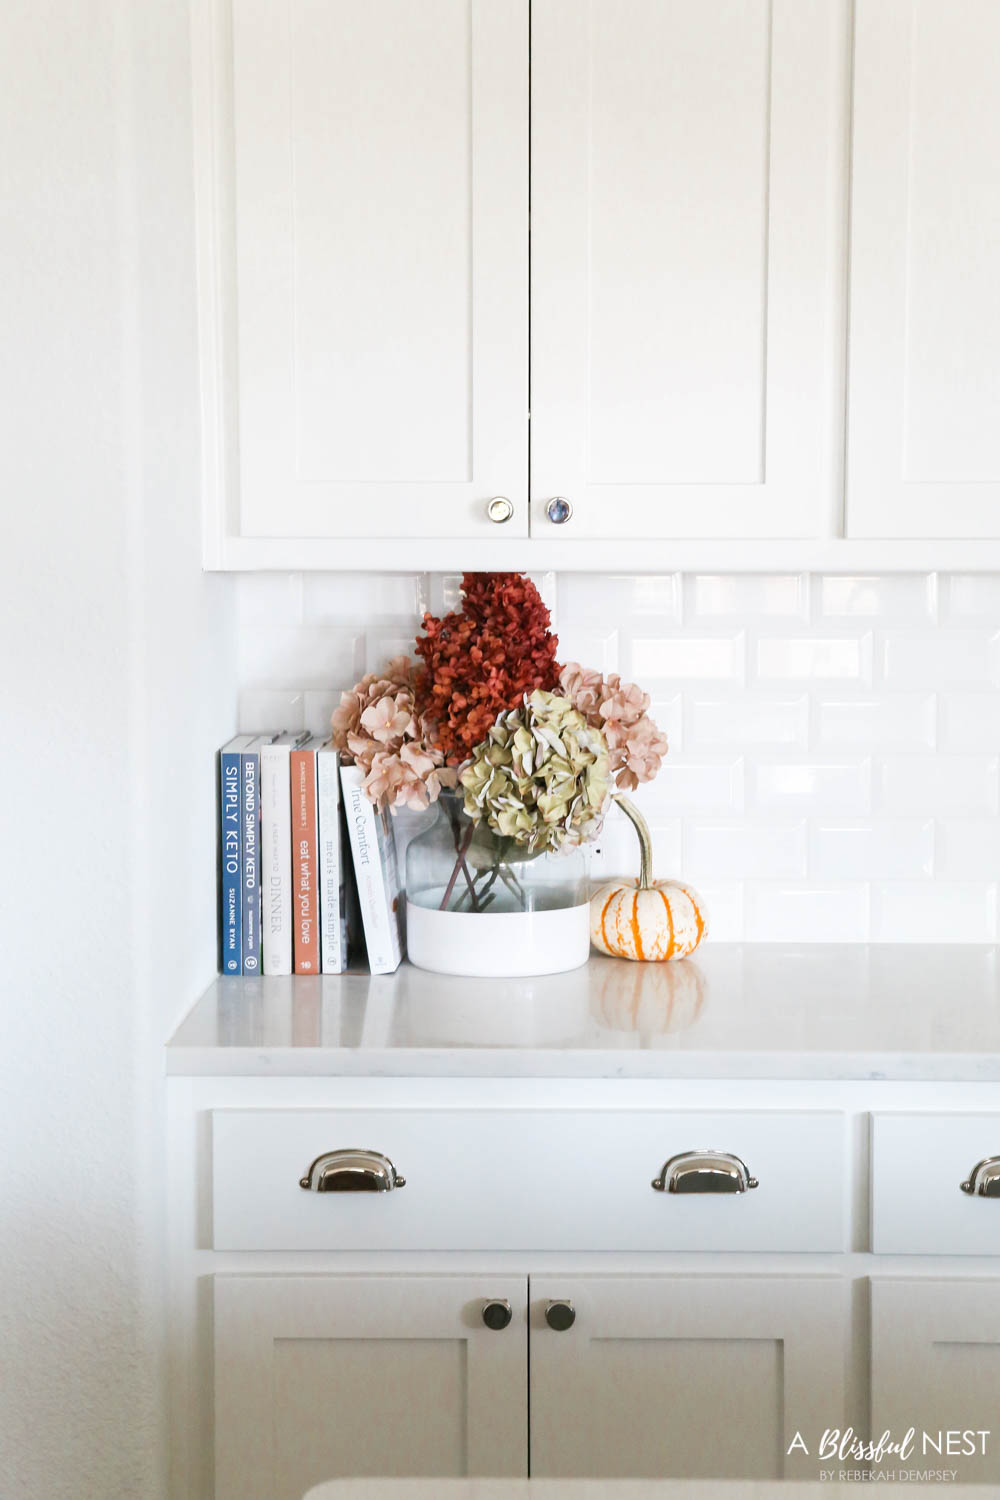 Beautiful fall decor details in this kitchen with burgundy eucalyptus leaves, delicious fall candles, Serena and Lily barstools. #ABlissfulNest #fallkitchen #falldecor #fallideas